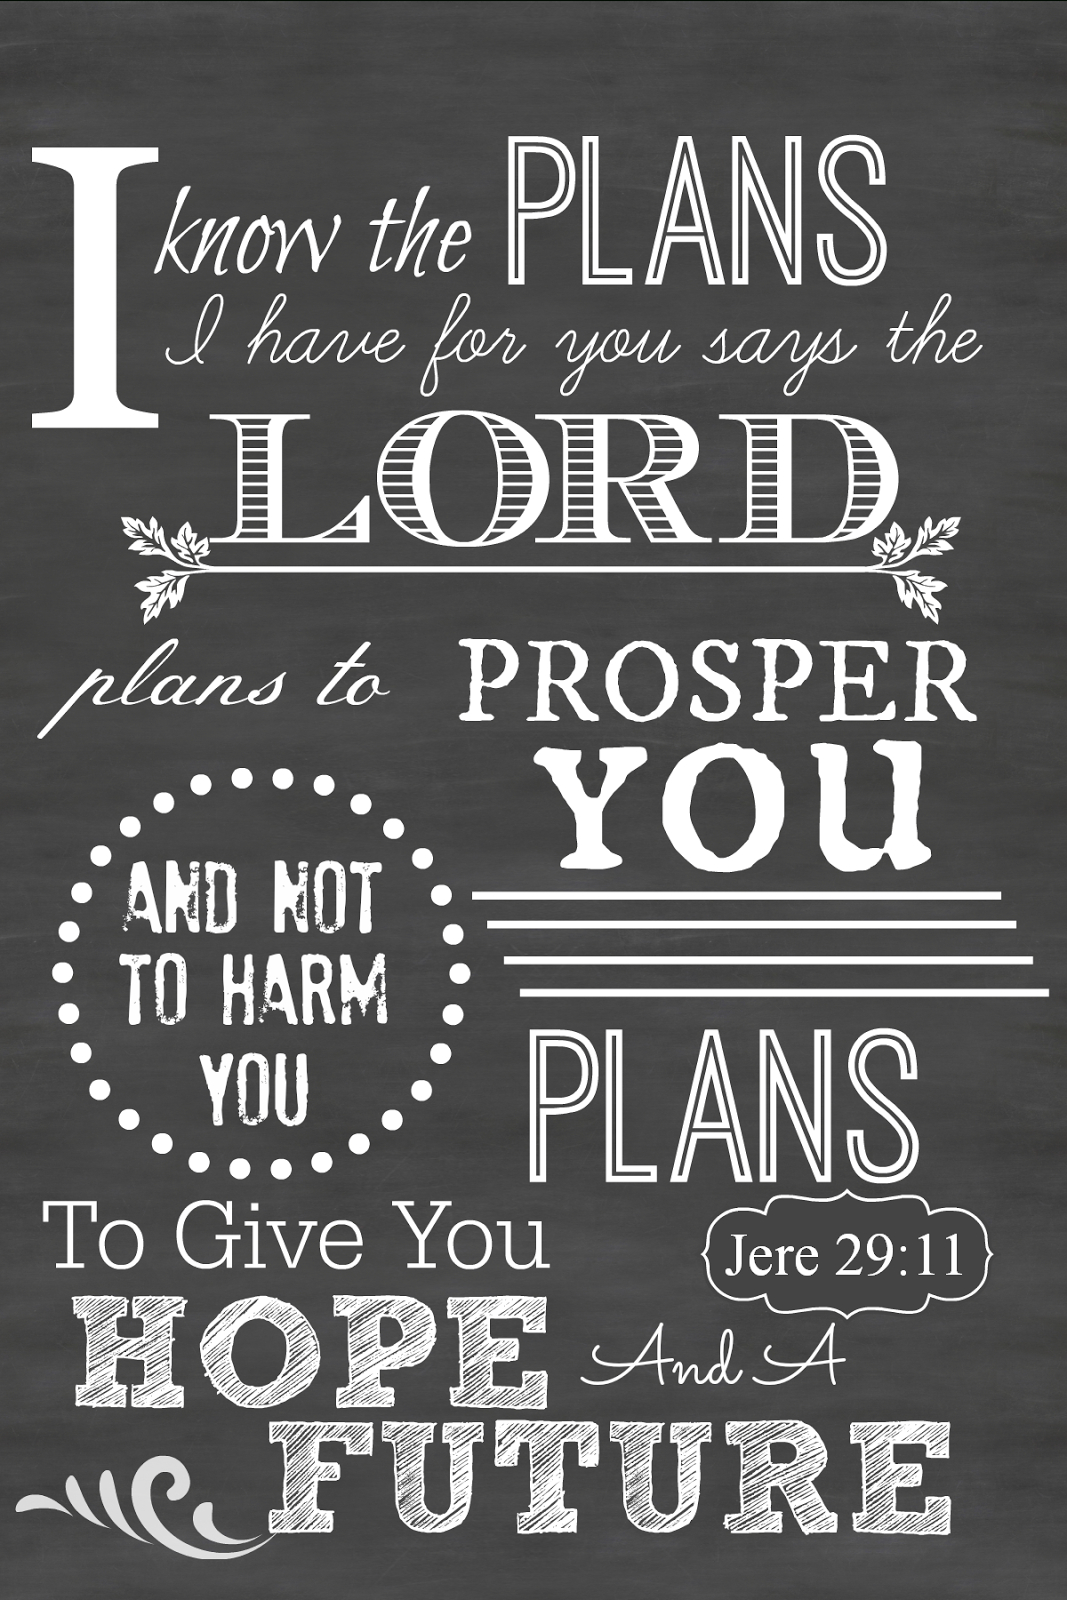 I Love This Encouraging Words From The Lord! ~ Free Printable - Jeremiah 29 11 Free Printable